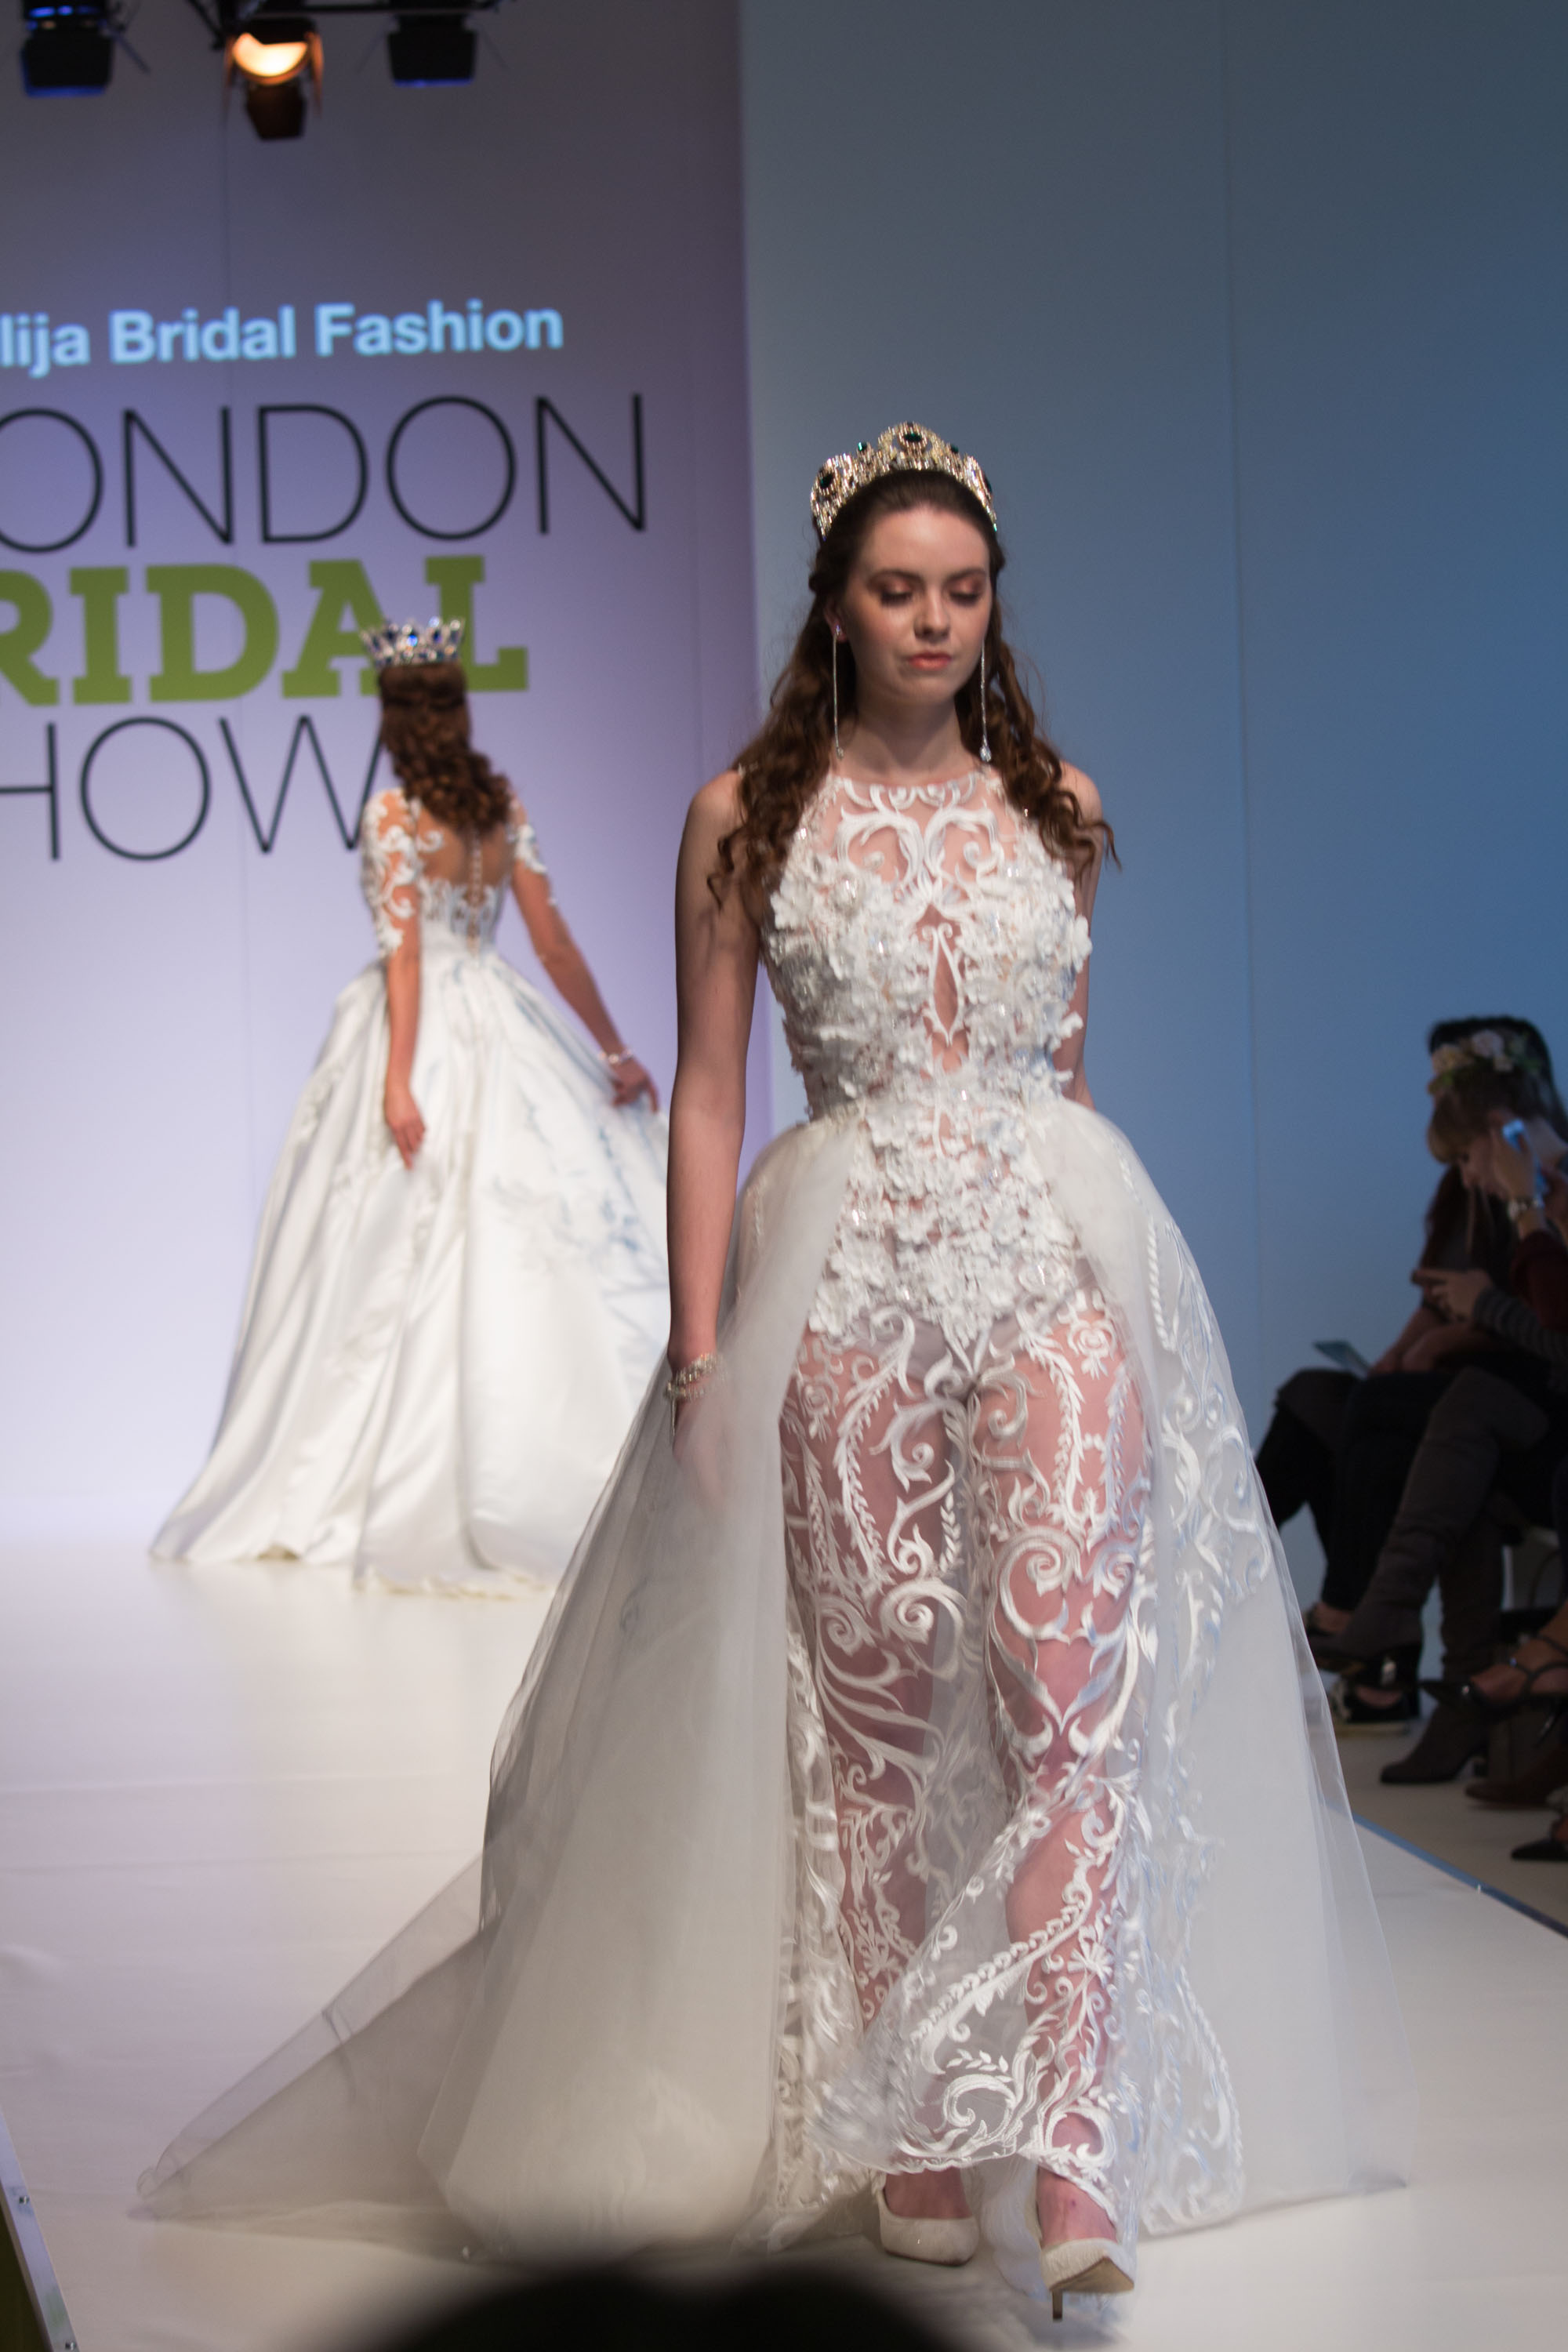 Birmingham | Wholesale wedding dresses - Julija Bridal Fashion